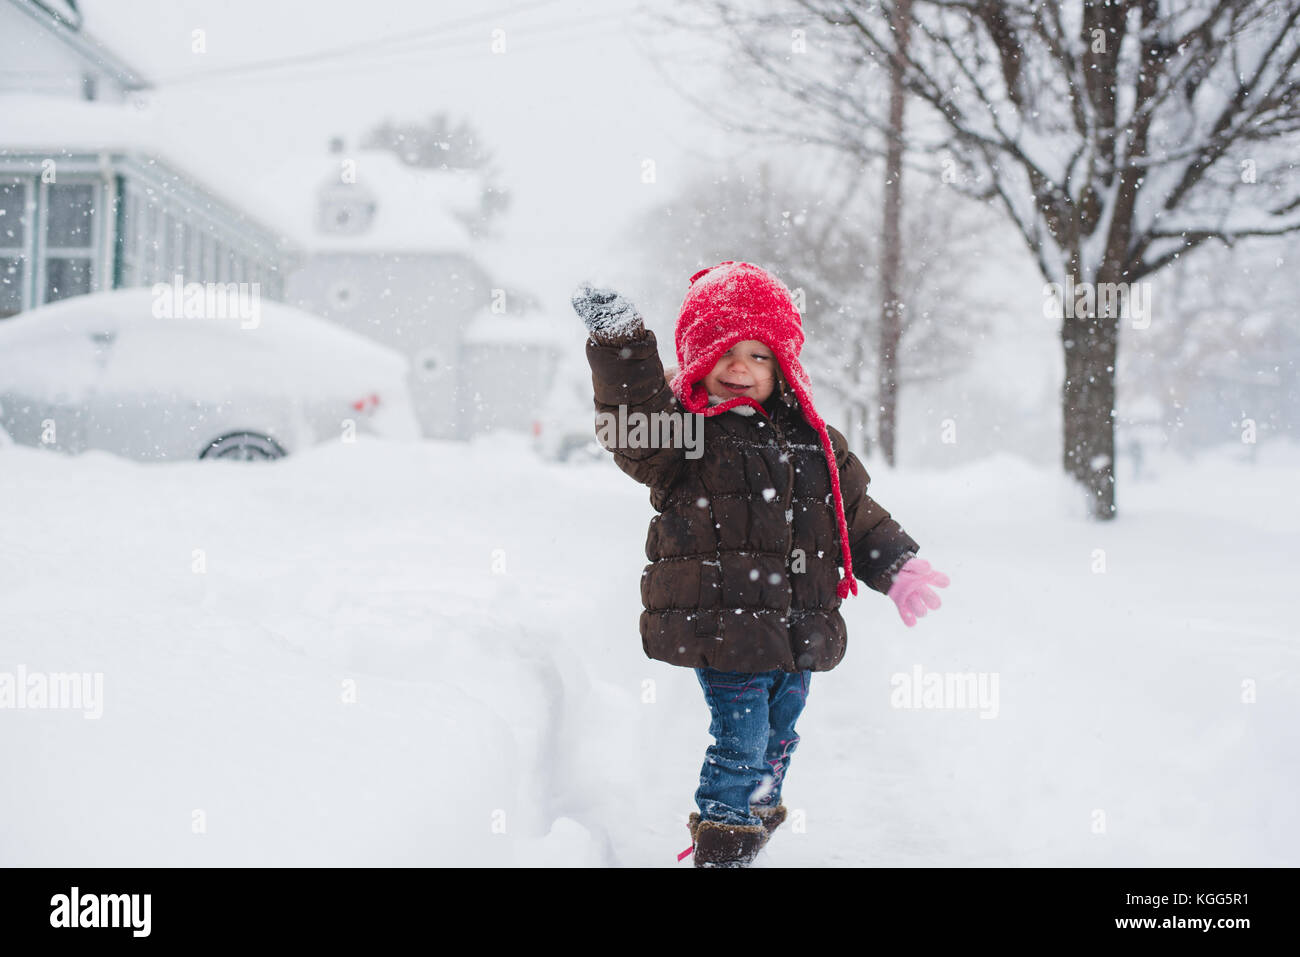 2-3 year old standing in the middle of a snow storm. - Stock Image